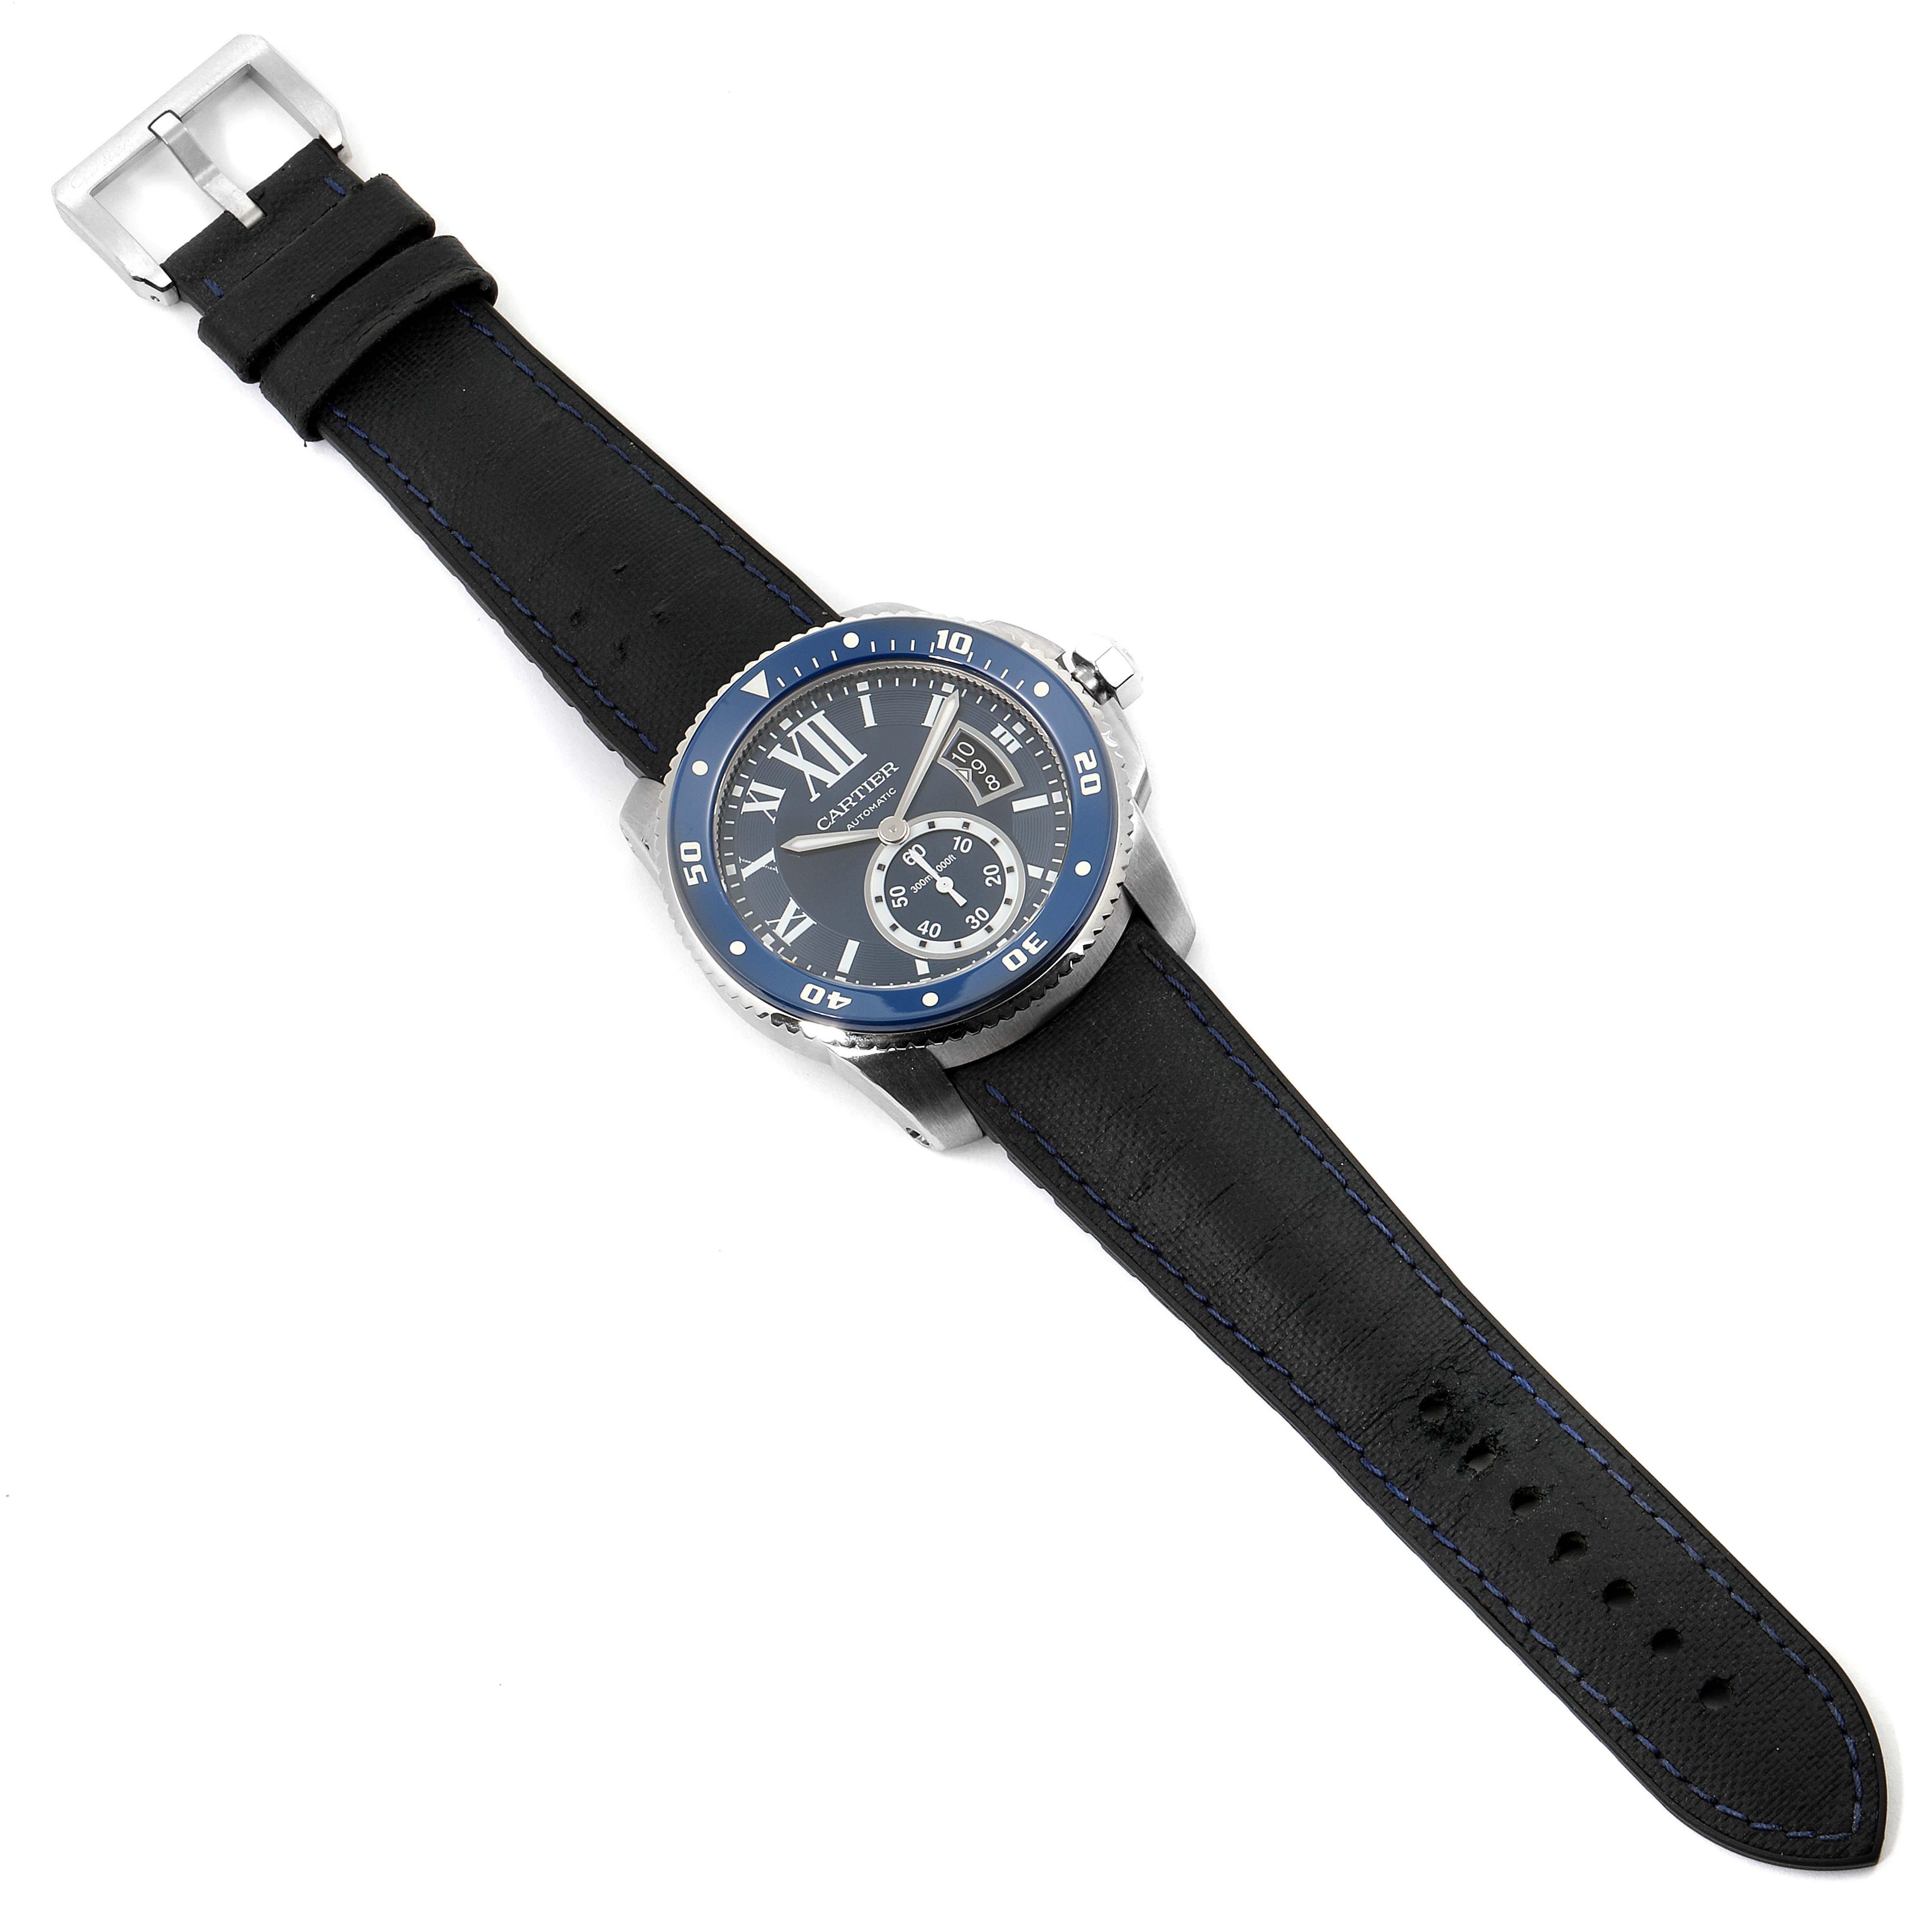 Cartier Calibre Diver Blue Dial Rubber Strap Steel Mens Watch WSCA0011 Papers SwissWatchExpo